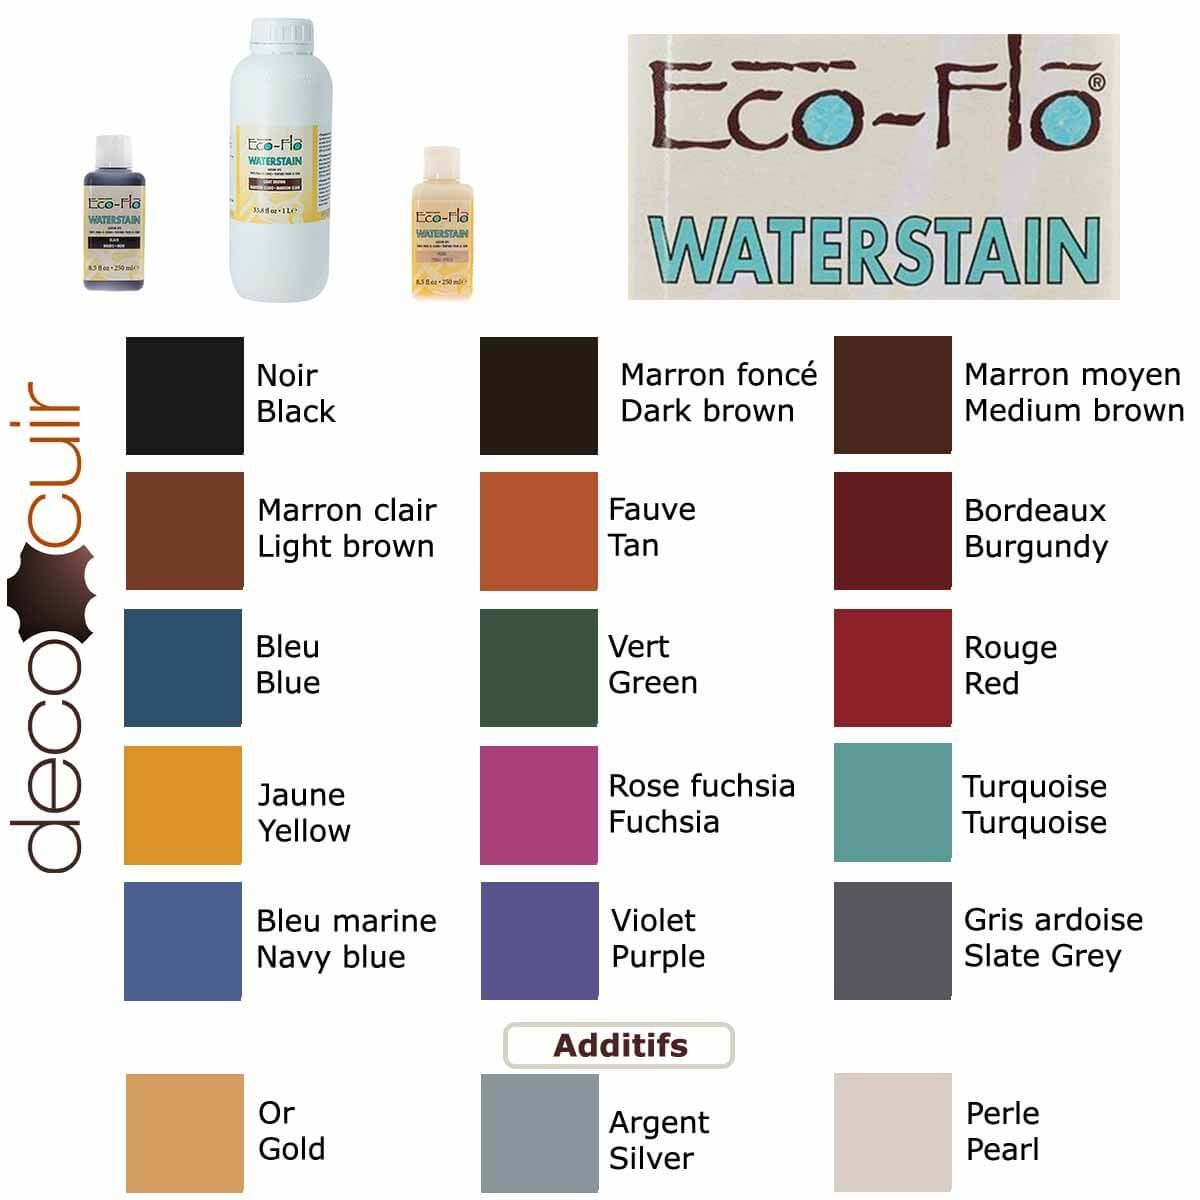 Teinture ECO-FLO WATERSTAIN - ROSE FUCHSIA / FUCHSIA - 250ml